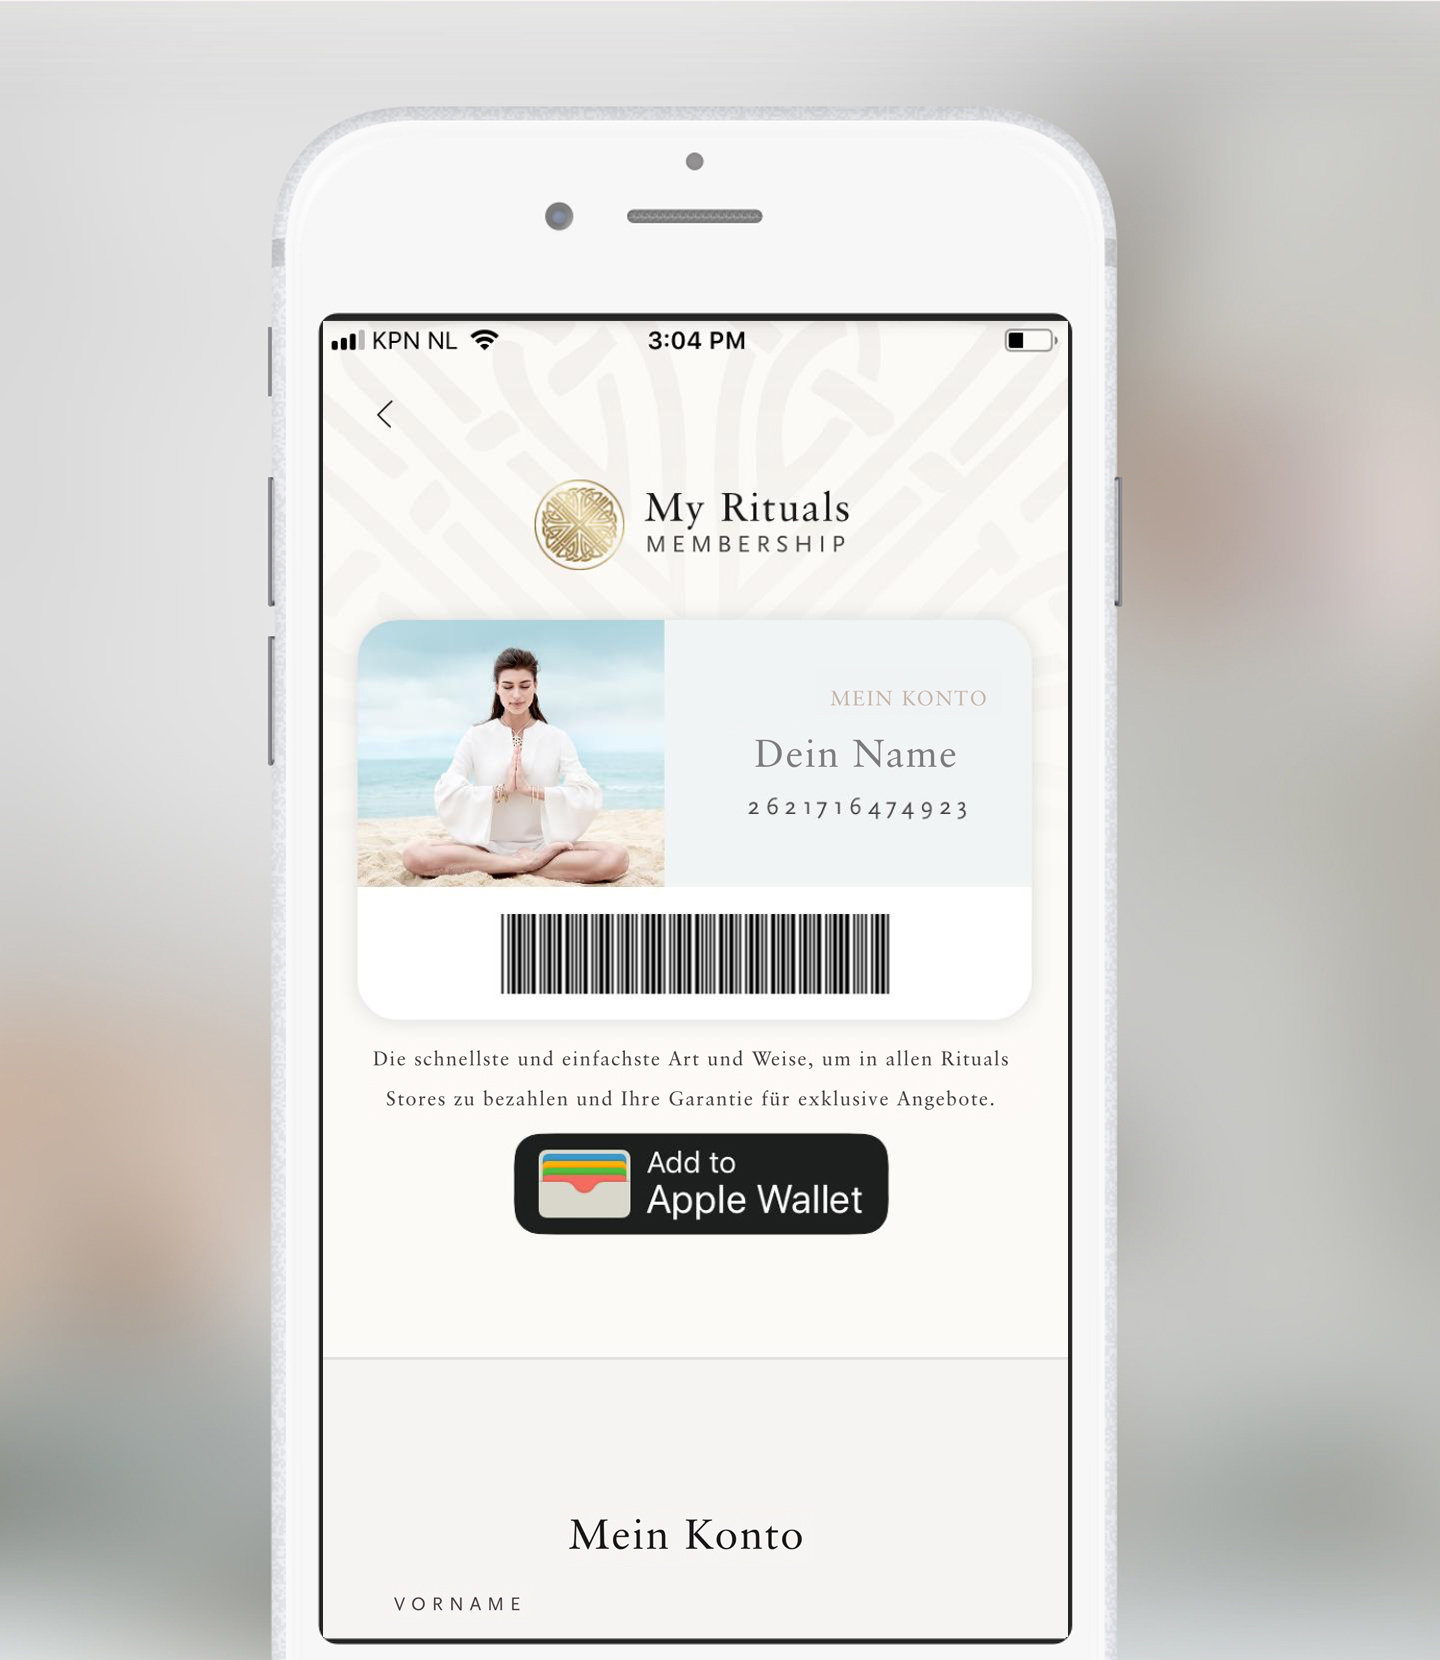 Download the My Rituals App